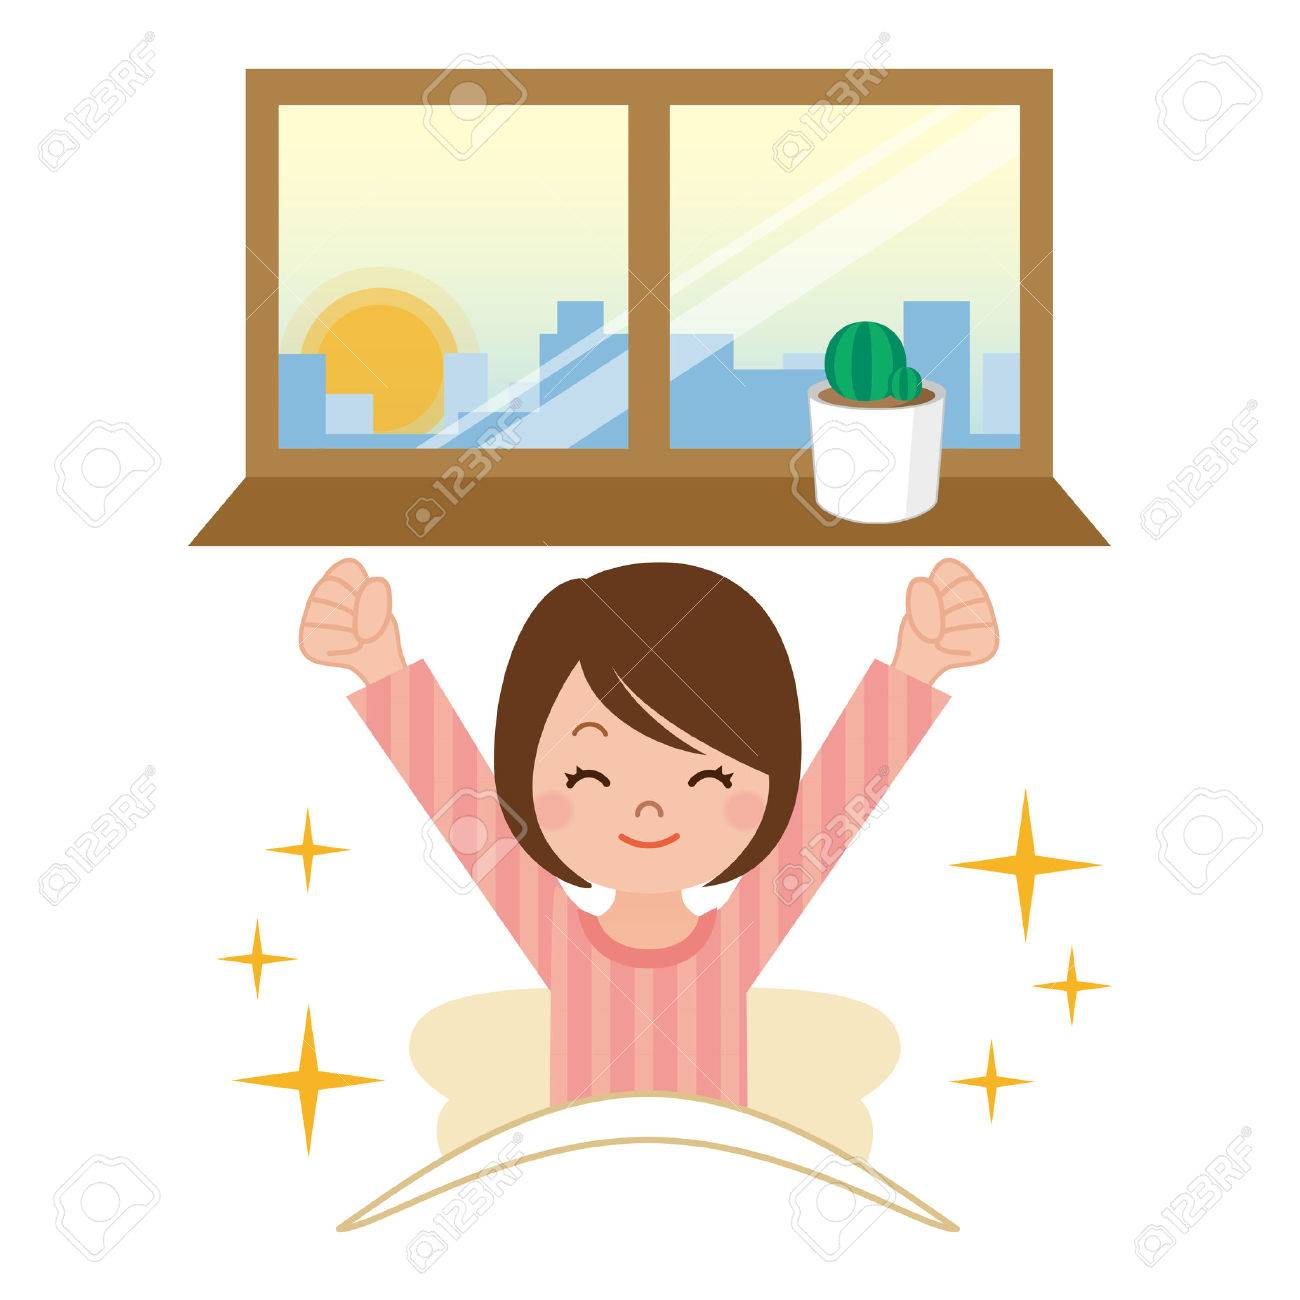 clipart royalty free library To wake up portal. Waking clipart wakeup